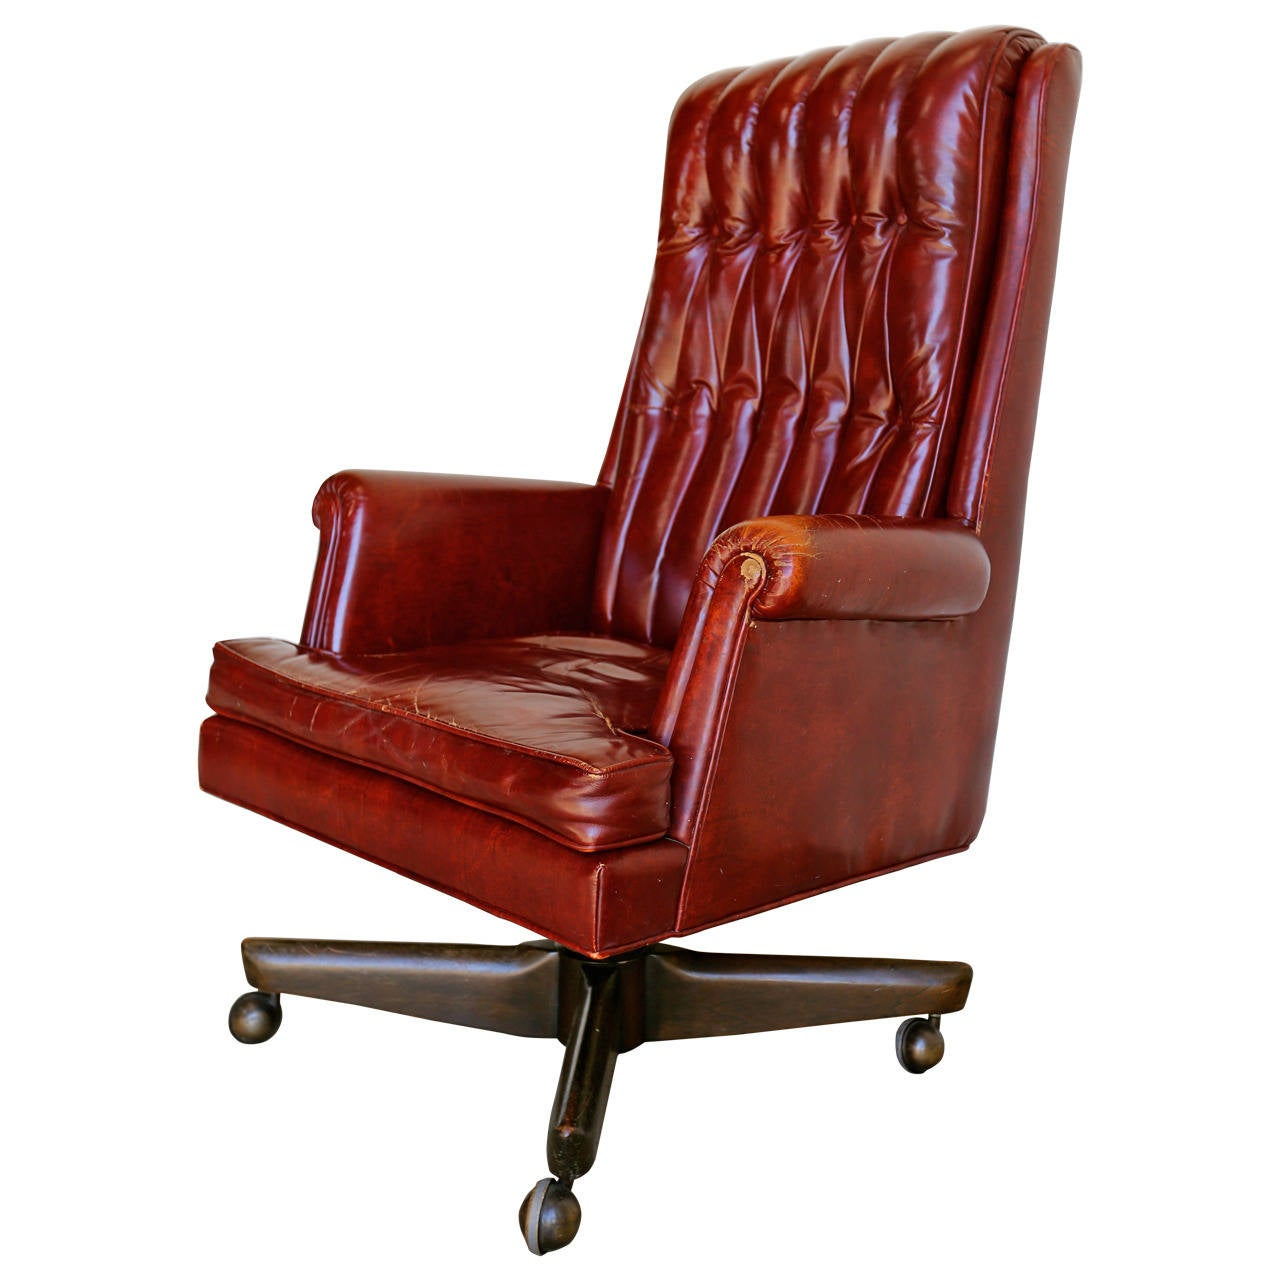 Distressed Leather Executive Desk Chair By Monteverdi